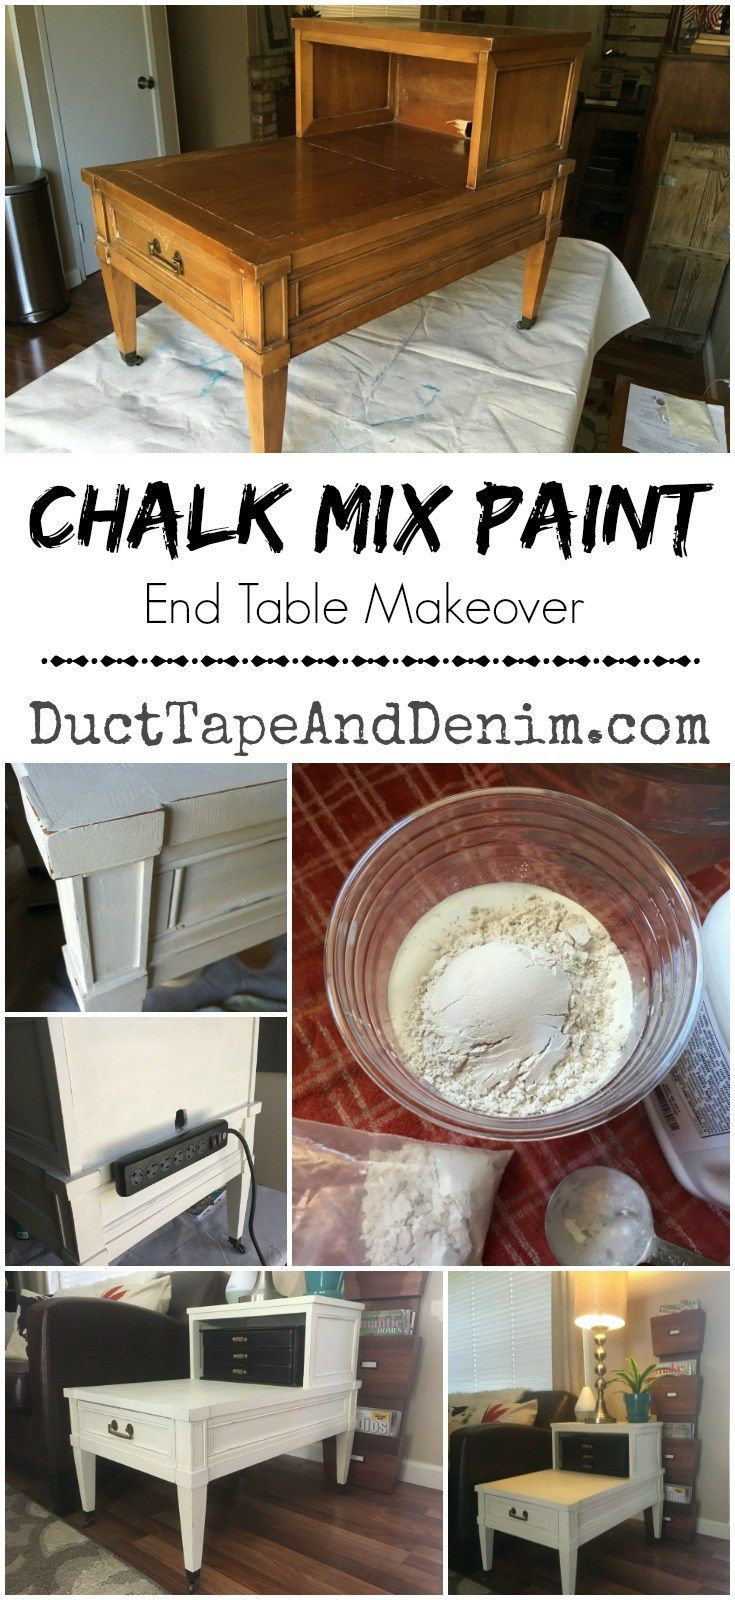 painted white end table makeover with chalk mix latex paint diy tables ducttapeanddenim refinished unique wood cowhide closet shelf dividers zenith coffee what color dark brown